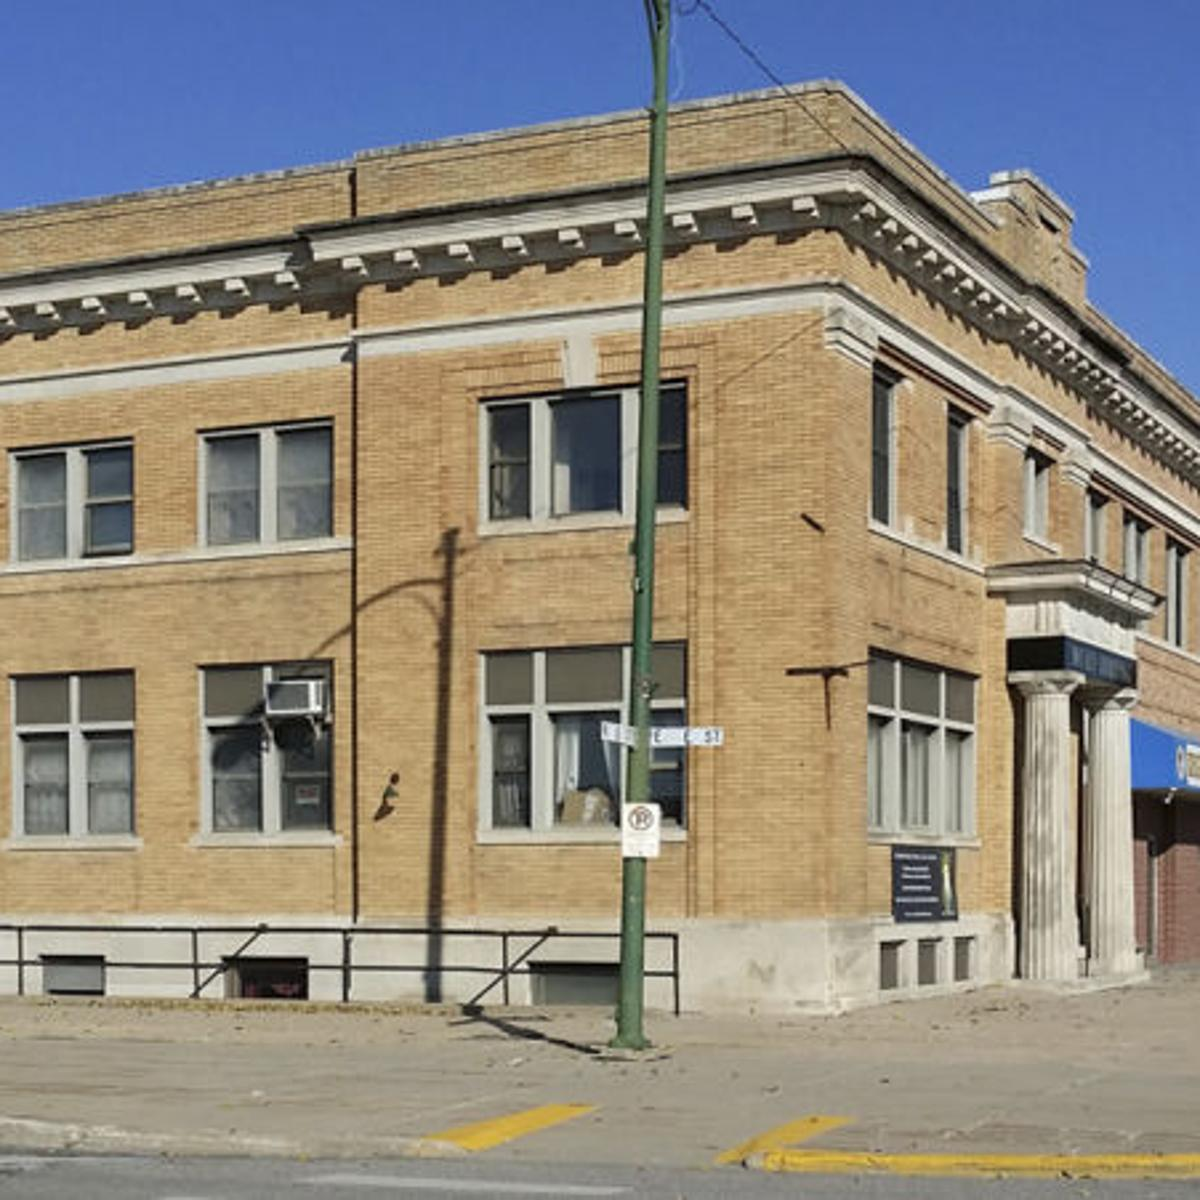 Historic building up for sale | Nebraska News | journalstar com